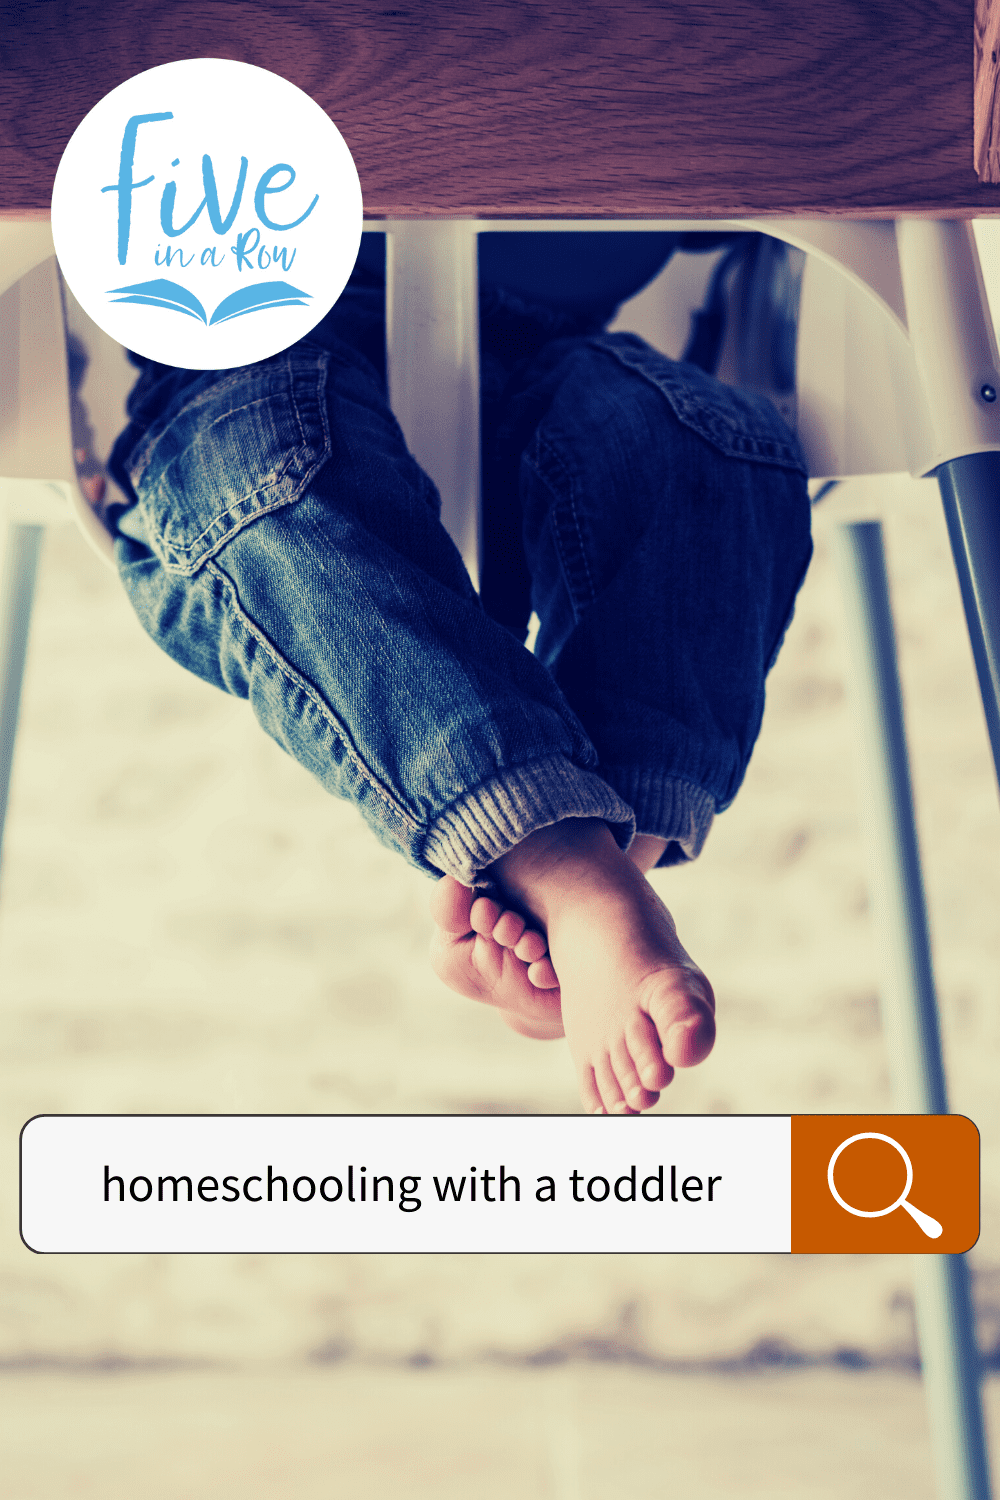 The idea of homeschooling with a toddler is daunting. Being a parent, a spouse, managing a home, and educating one or more children (at times while working a part or full-time job) is overwhelming even to think about. Add a toddler into the mix, and it seems impossible. It's not, you can do it and also make it enjoyable most of the time! Like anything else in life with many moving parts, you have to find a rhythm that works for you and everyone involved. Below are our top 10 tips for homeschooling with a toddler. Be sure to grab your FREE literature-based unit study for ages 2-4 from Before Five in a Row at the end of this post.